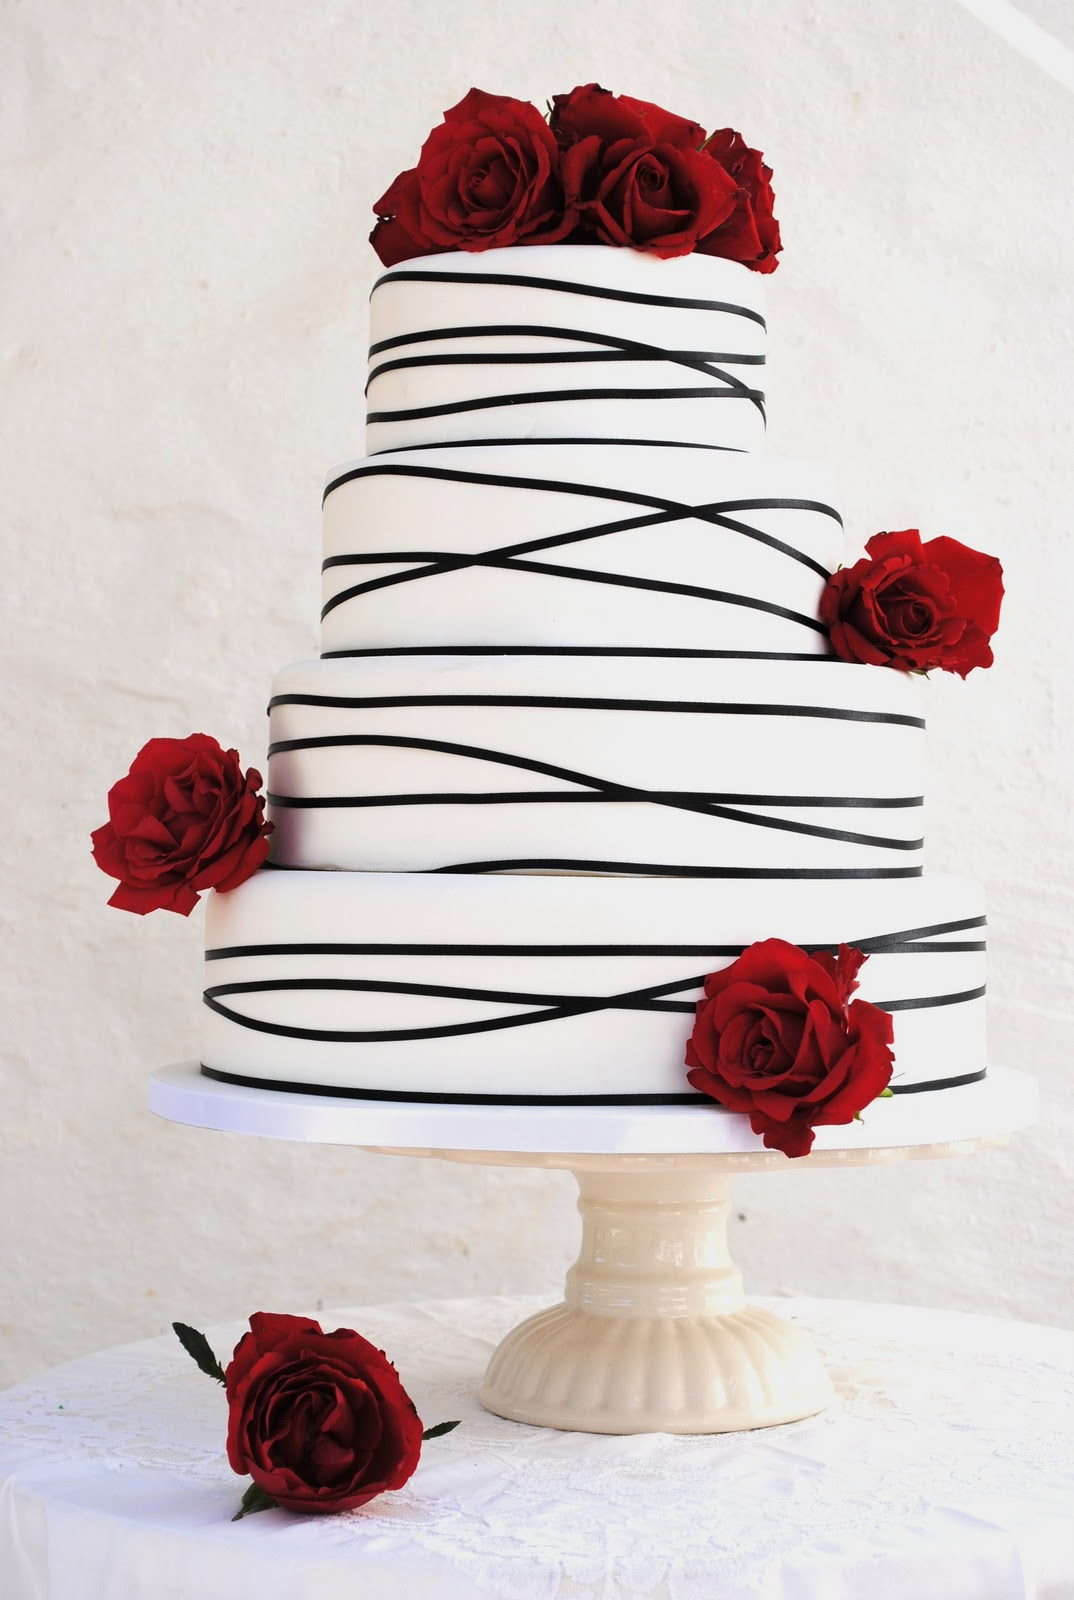 Berry covered wedding cake My wedding ideas